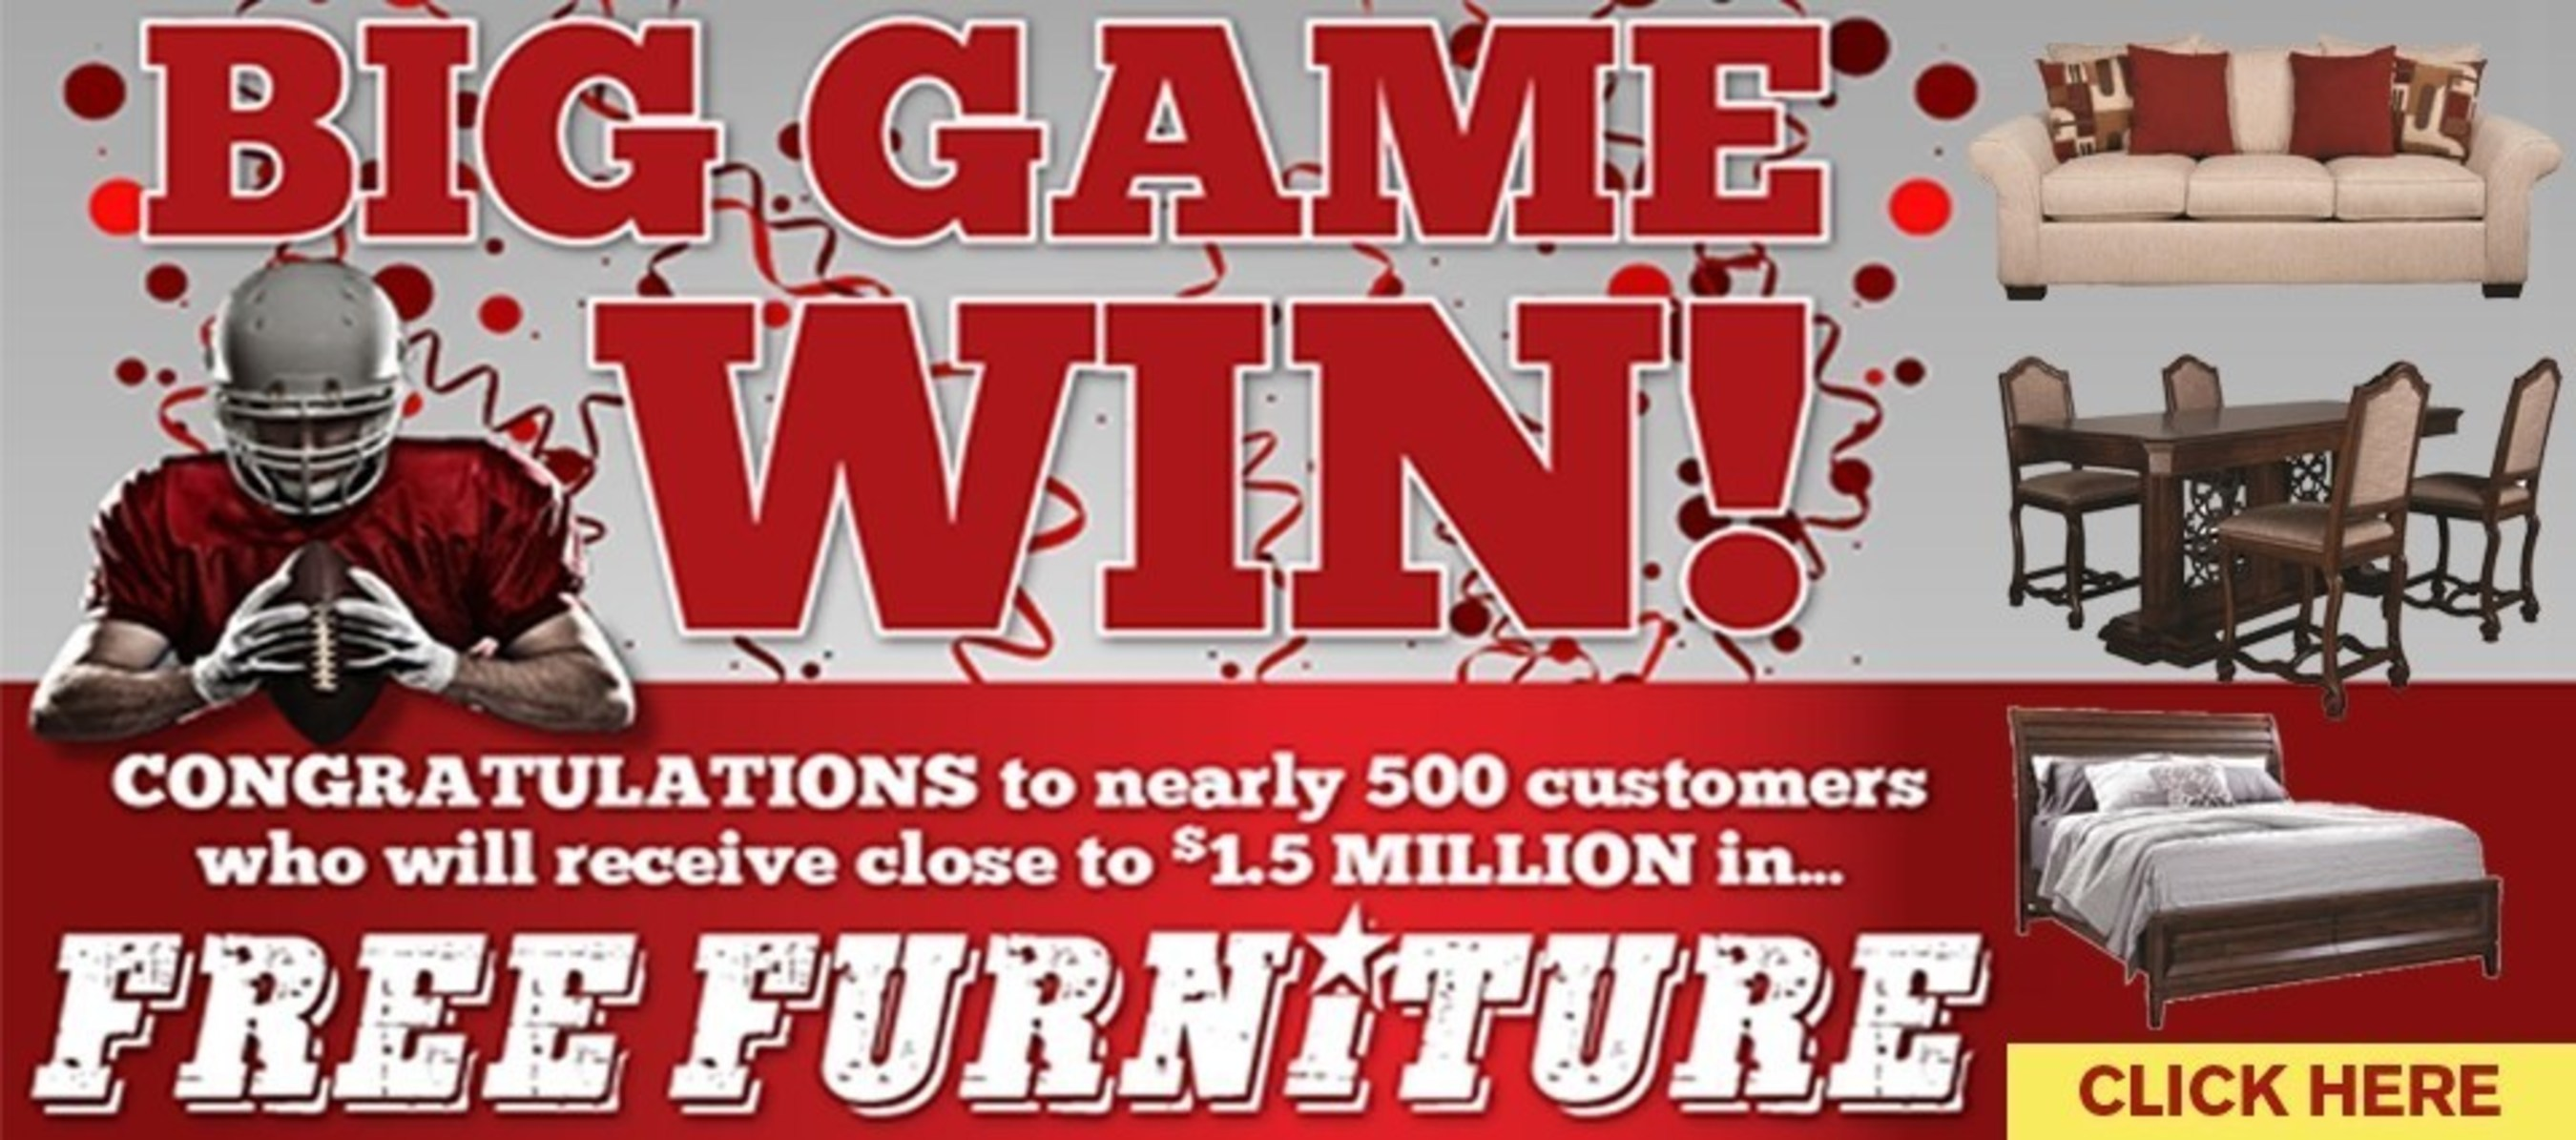 Morris Home Furnishings Awarded $1.5 Million to Consumers After Ohio State football win.